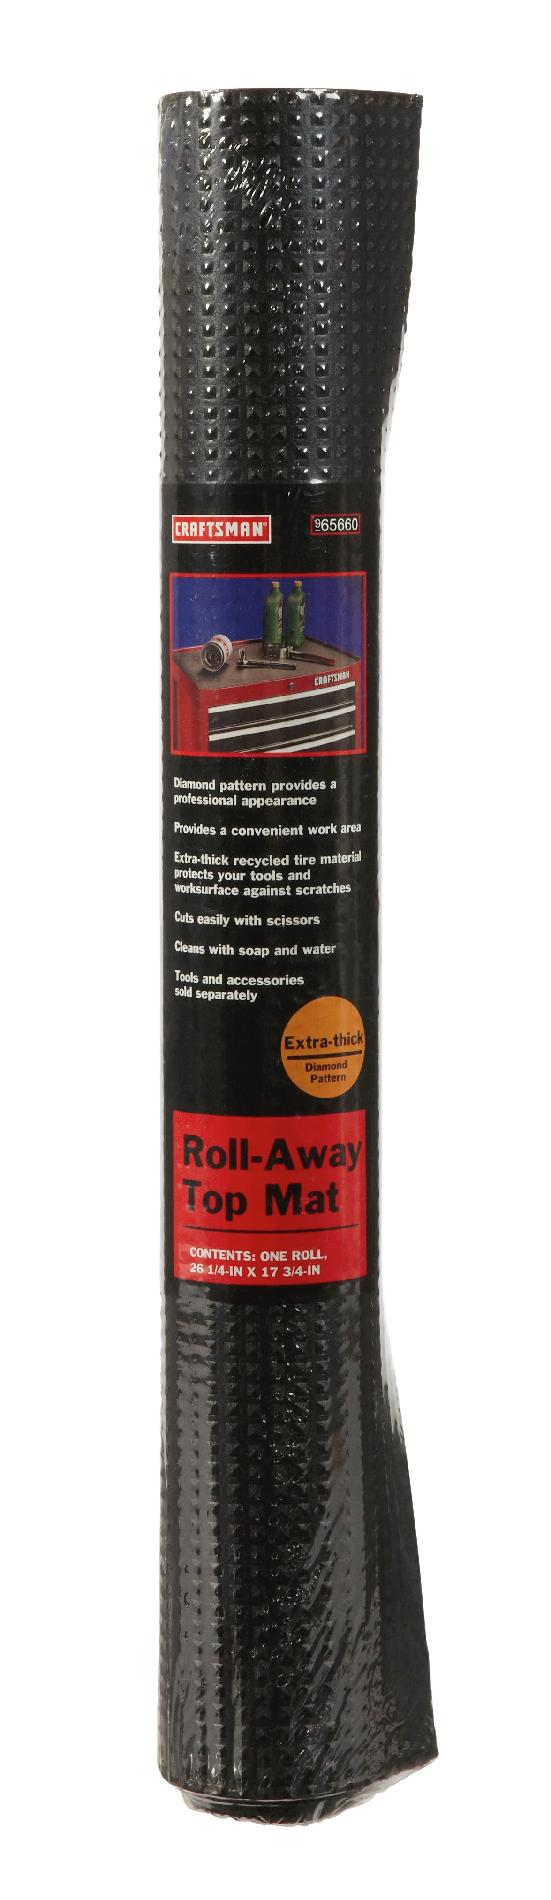 Craftsman Diamond Top Mat